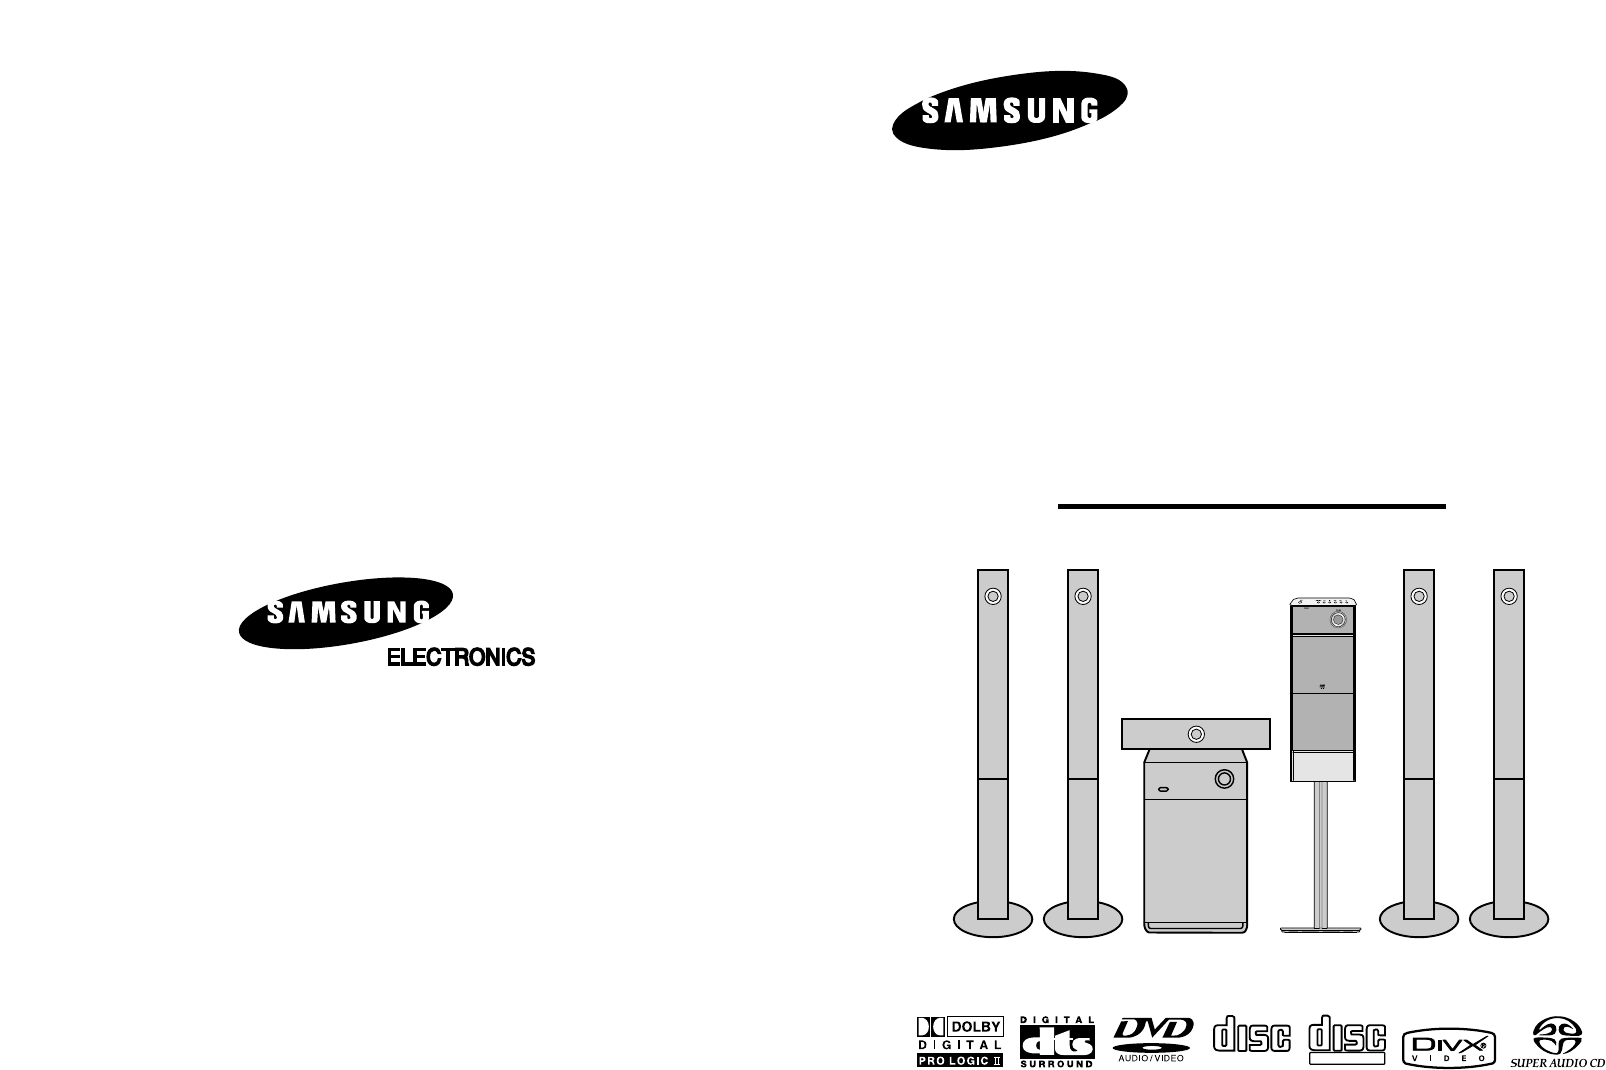 Samsung Home Theater System Ht